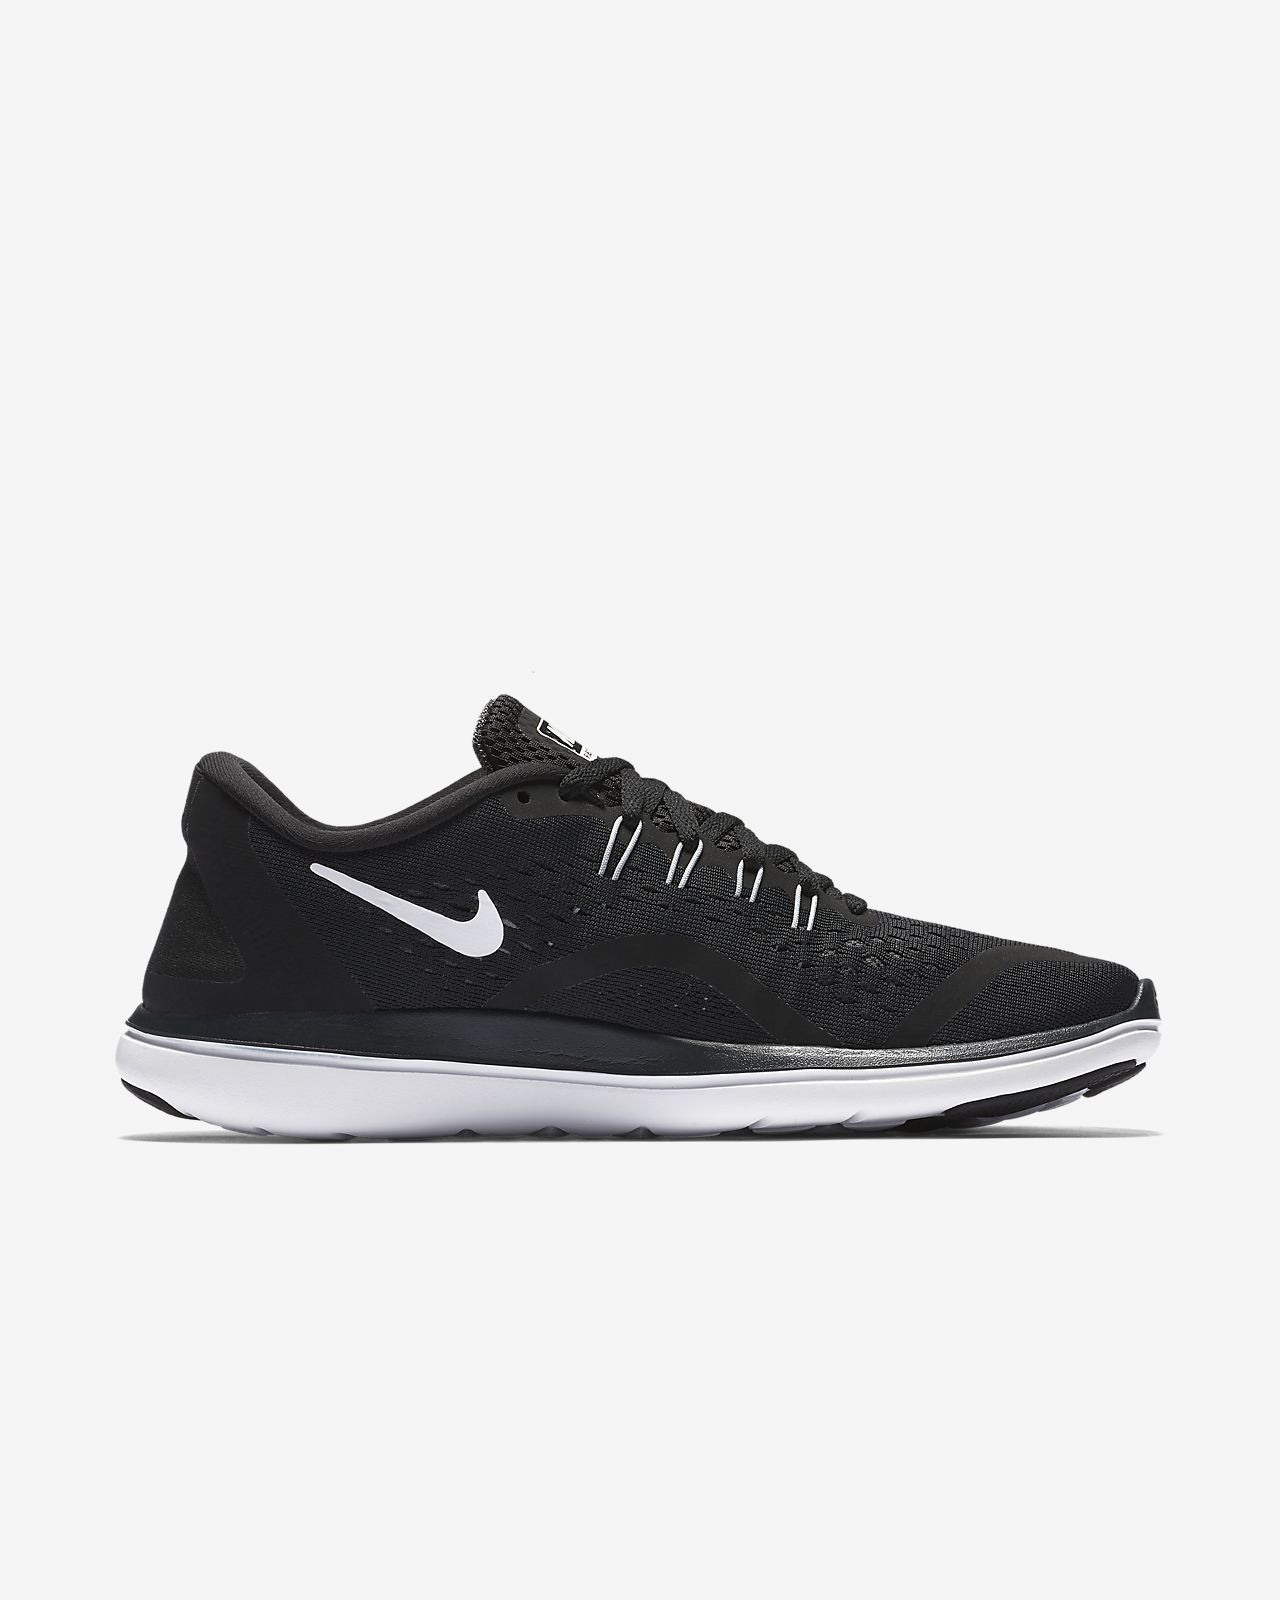 497d53039352 ... Women s Running Shoe. Nike Flex 2017 RN ...